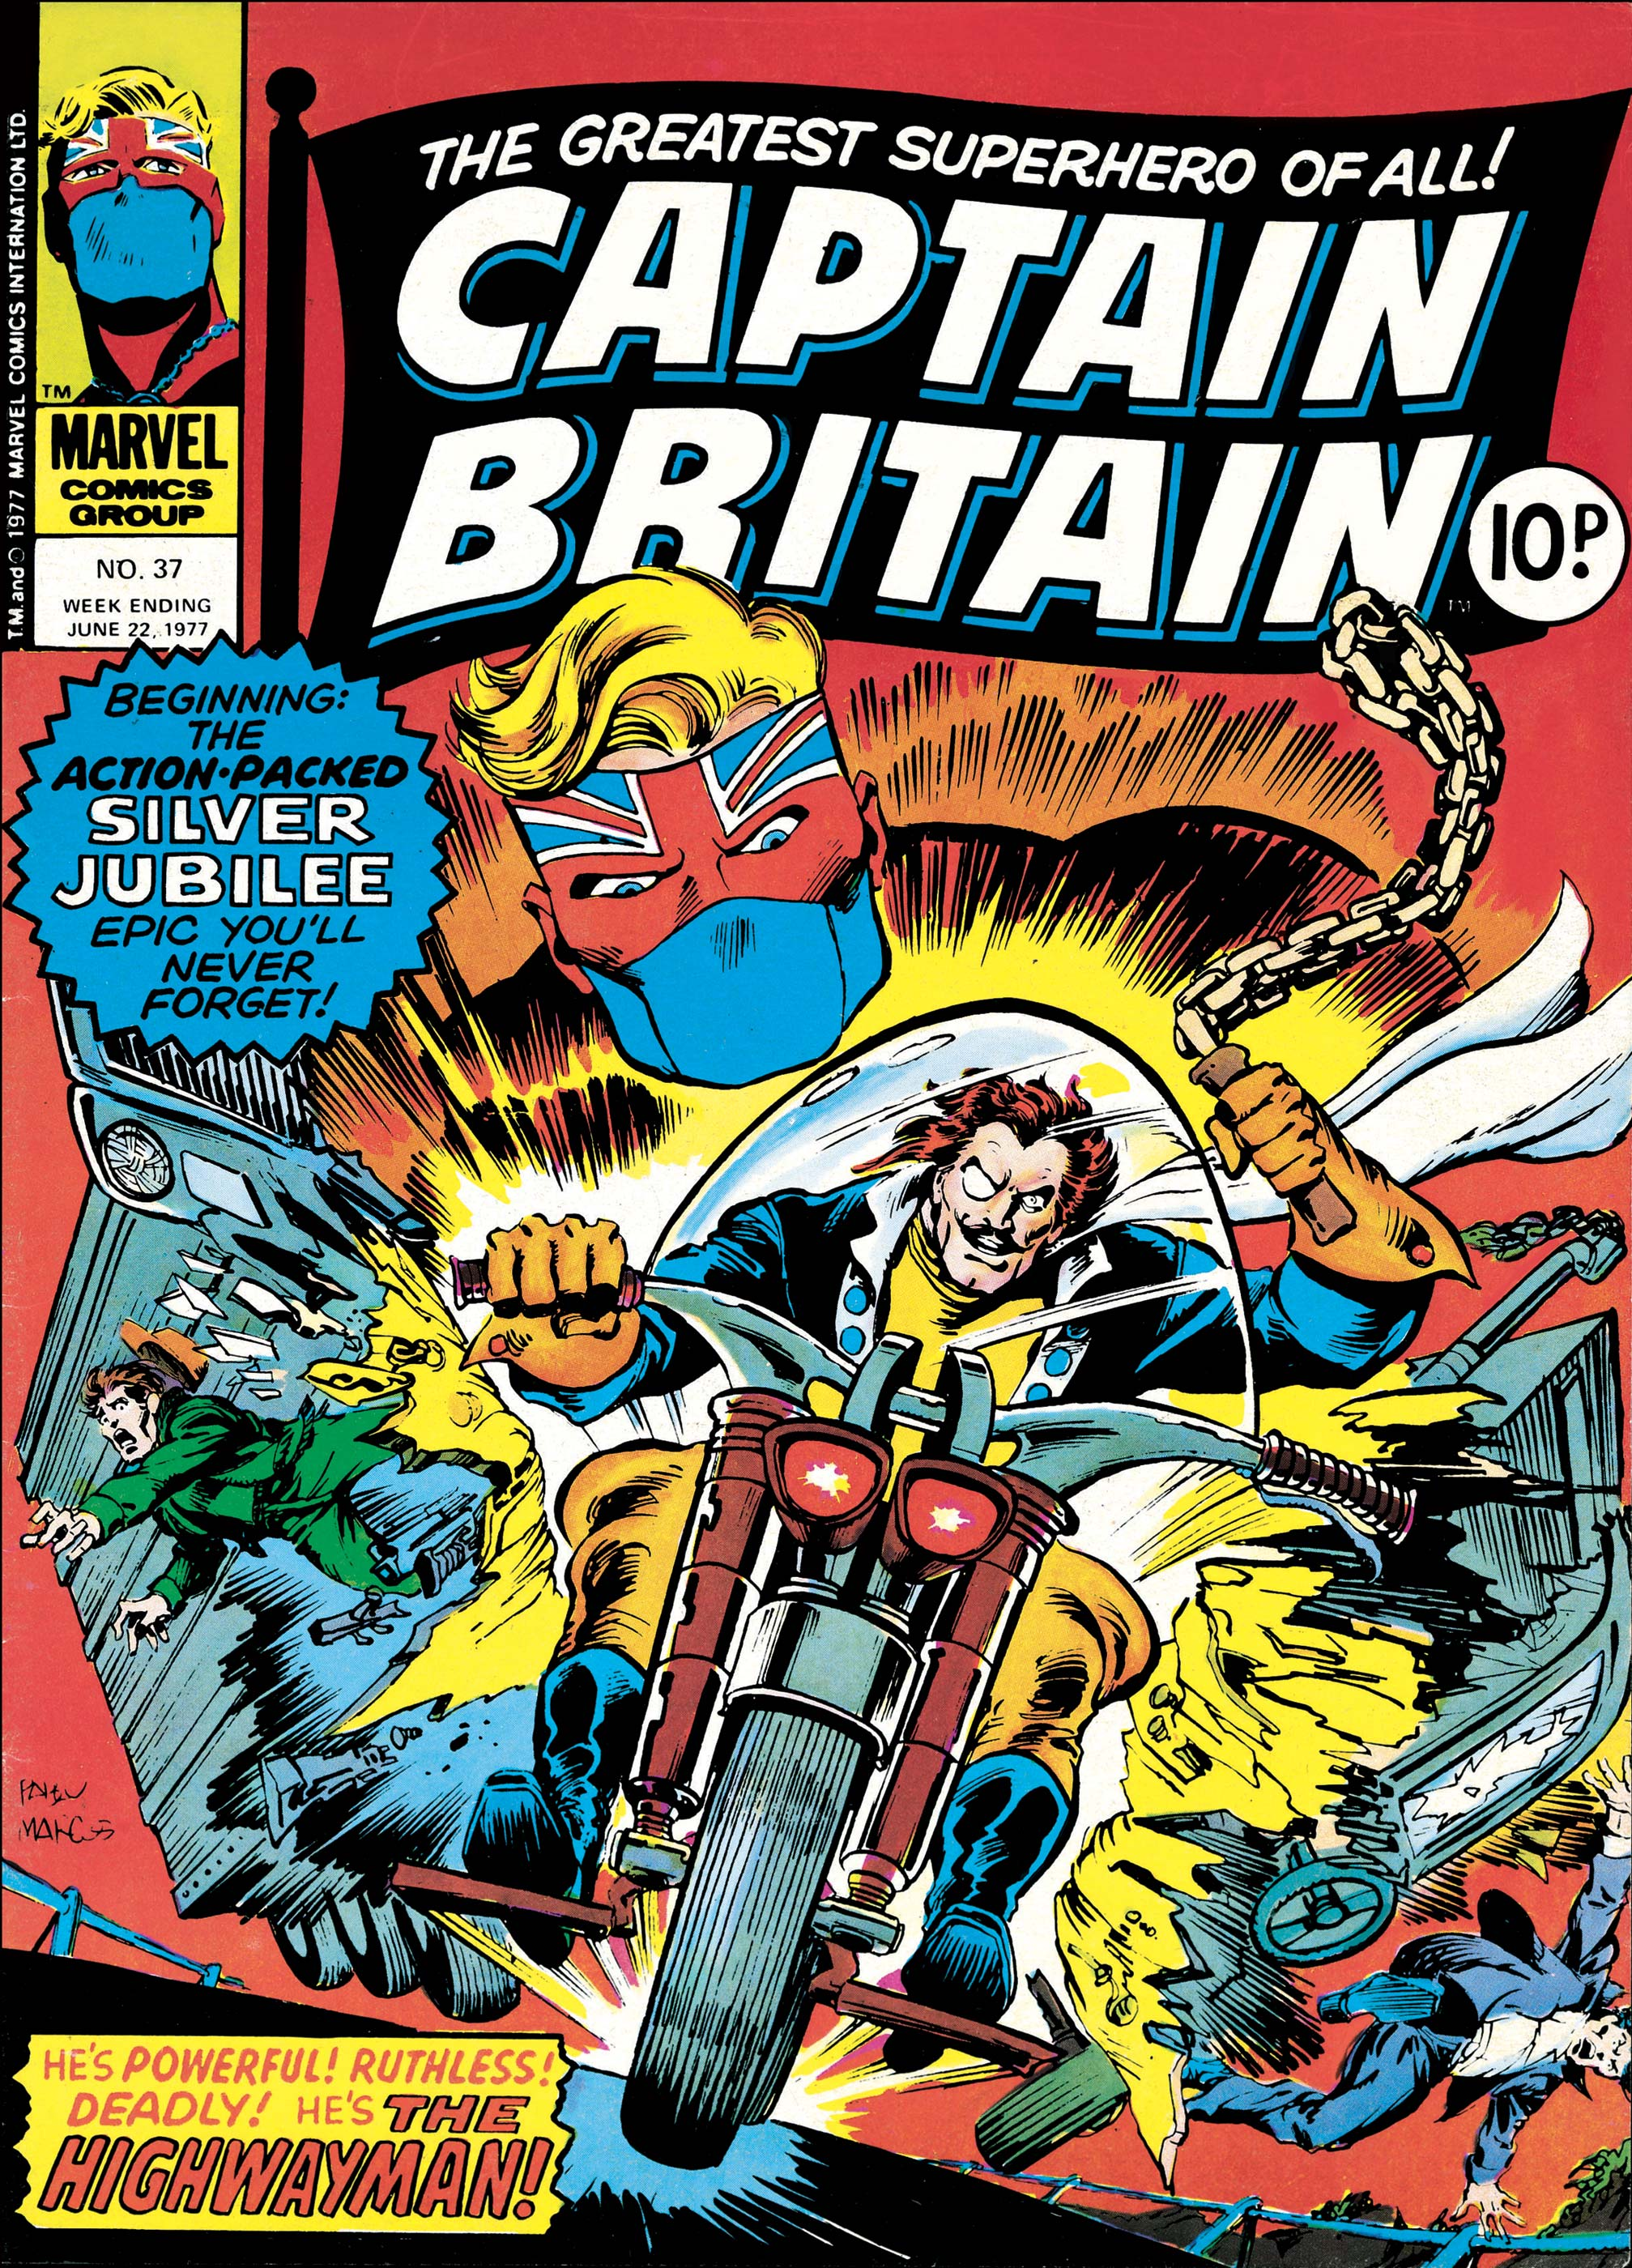 Captain Britain (1976) #37